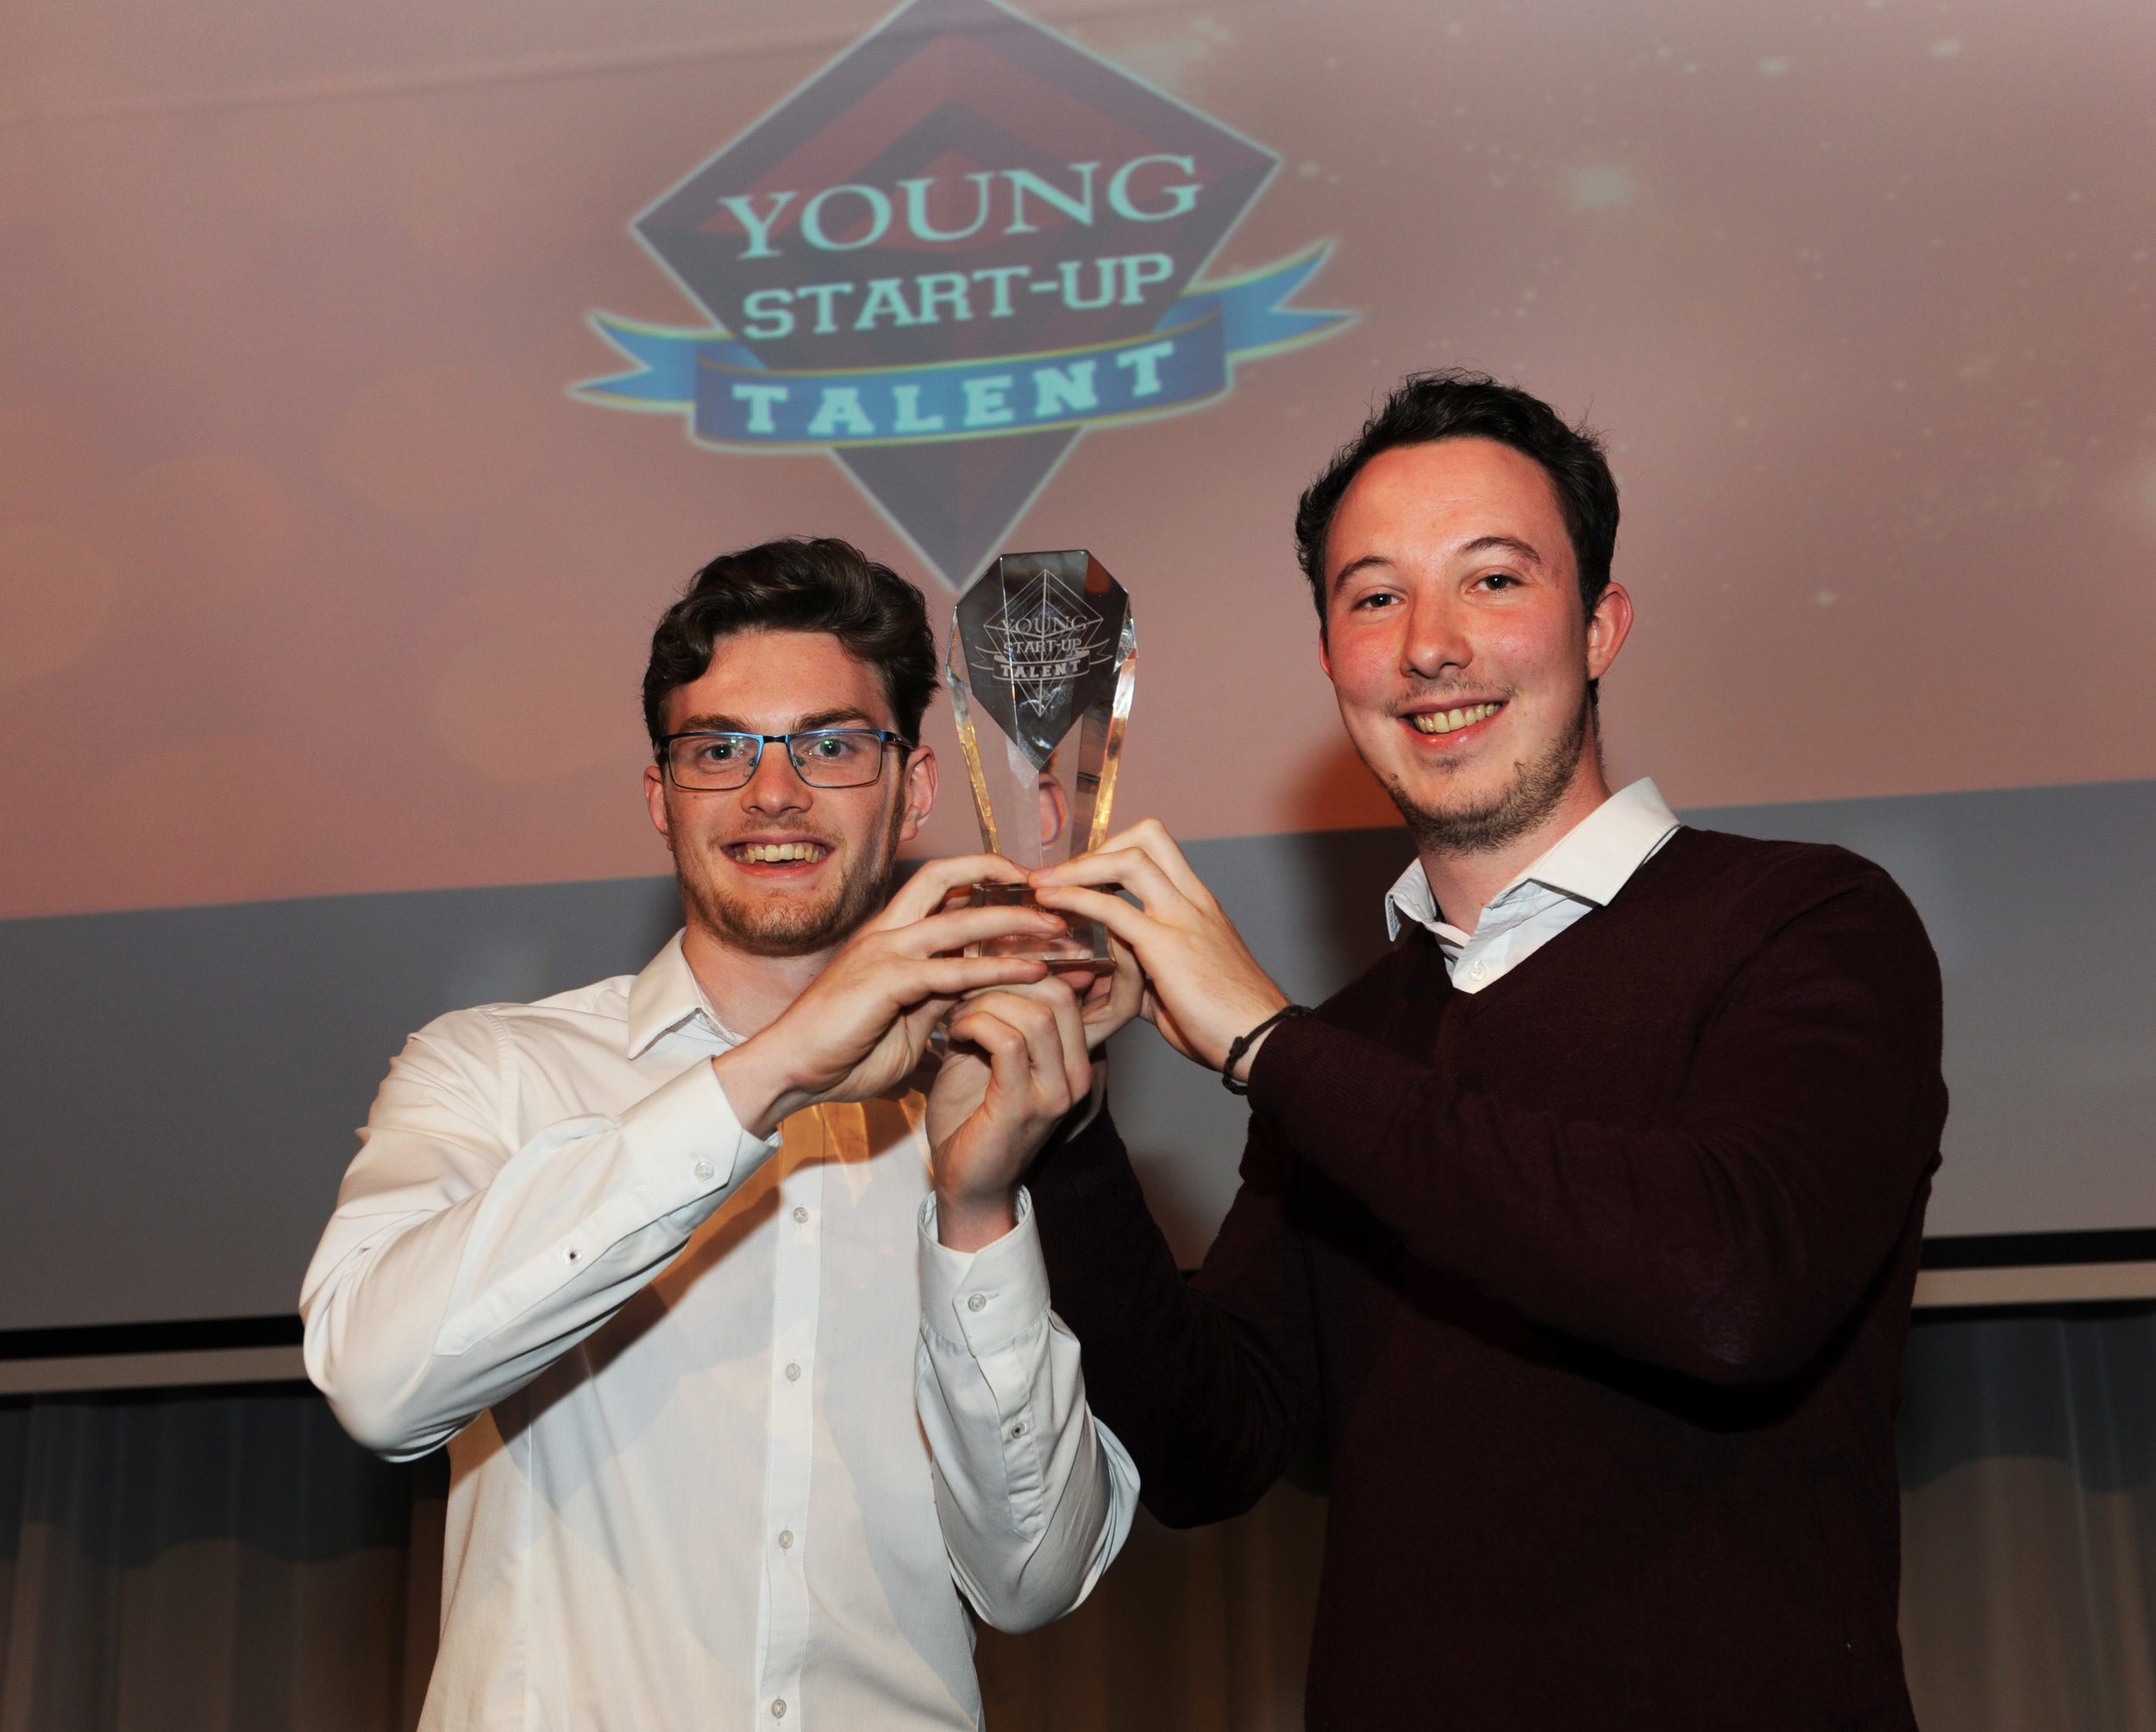 Laurence Grant & Rob O'Sullivan – Shaking Hands Young Start-up Talent winners Croydon 2016